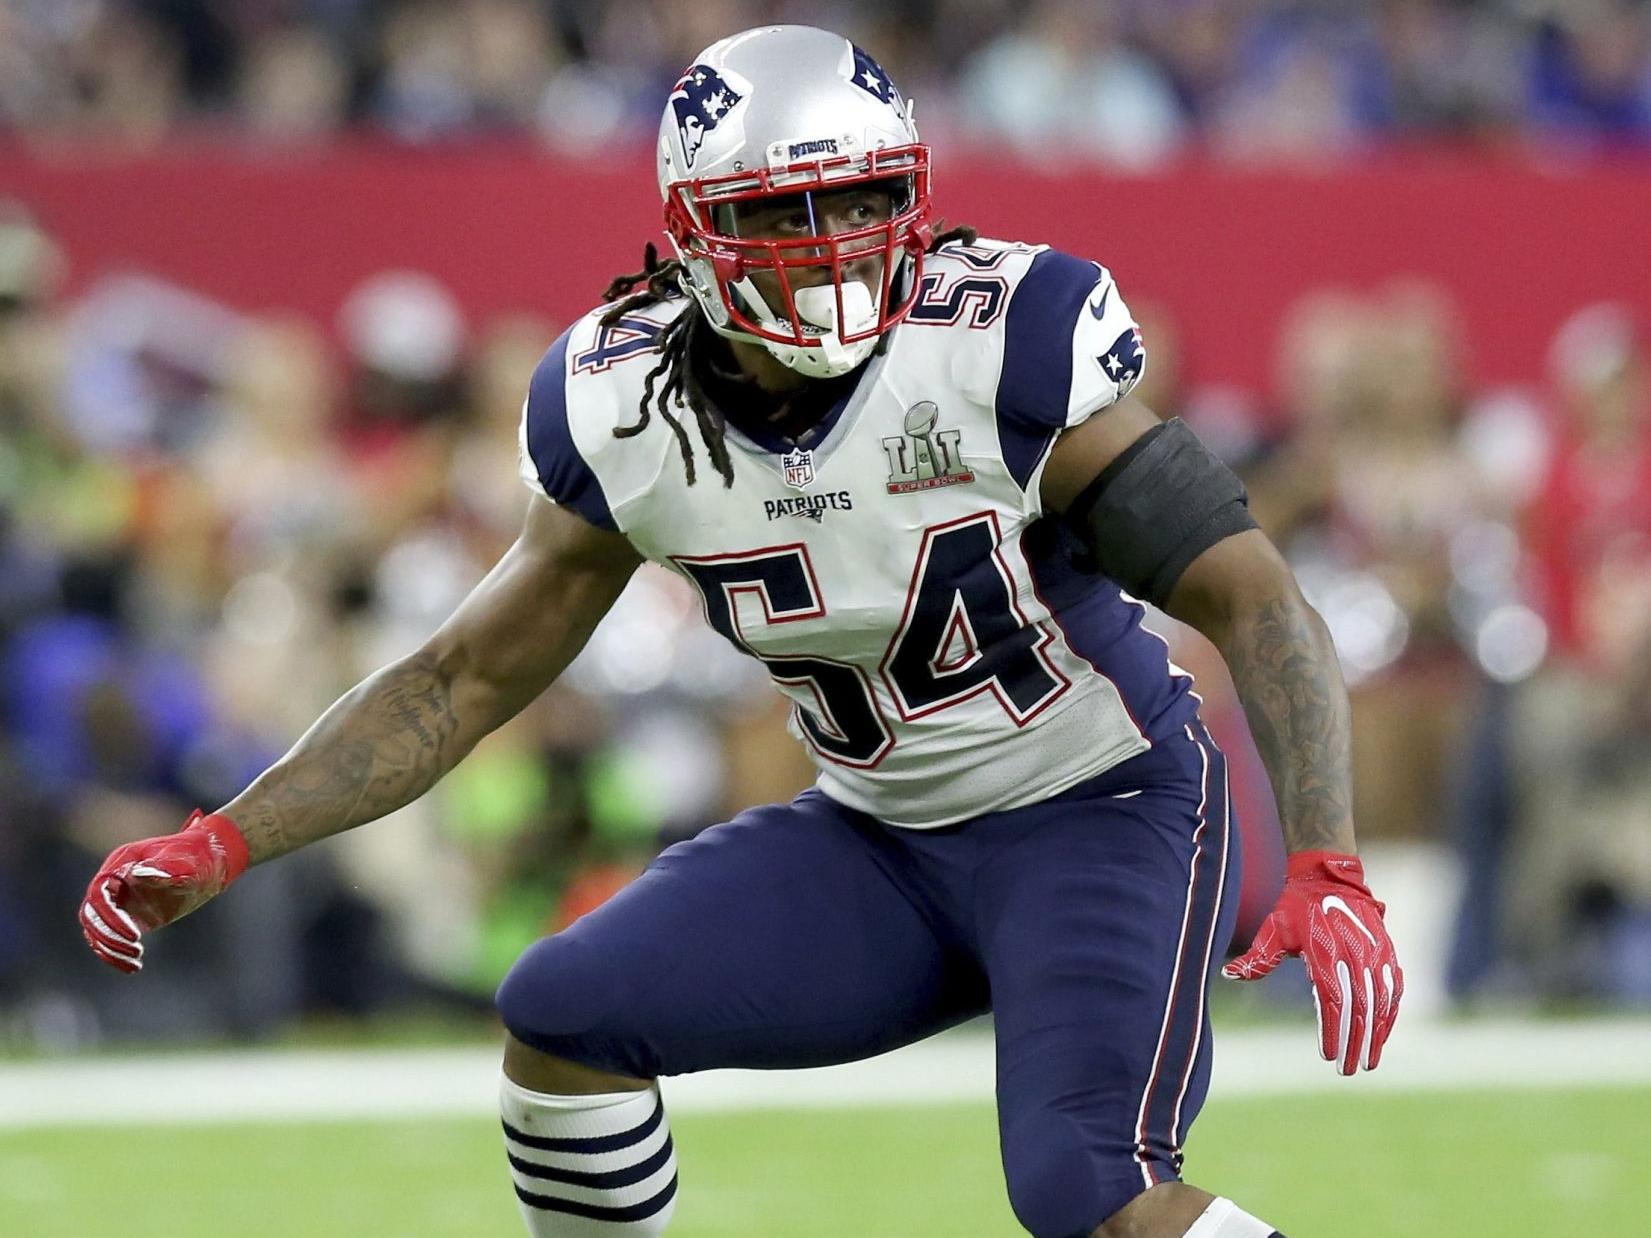 Notebook: Hightower has deal with Patriots